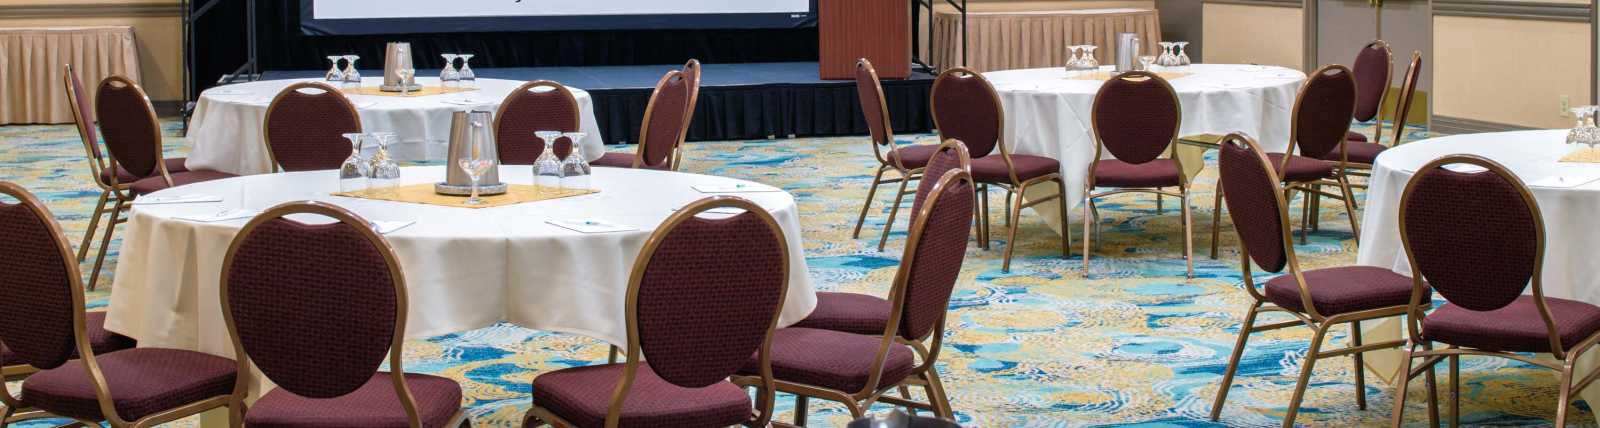 meeting-facility-Embassy_Suites_Seattle-Tacoma_International_Airport_Meeting_Facility-22.JPG